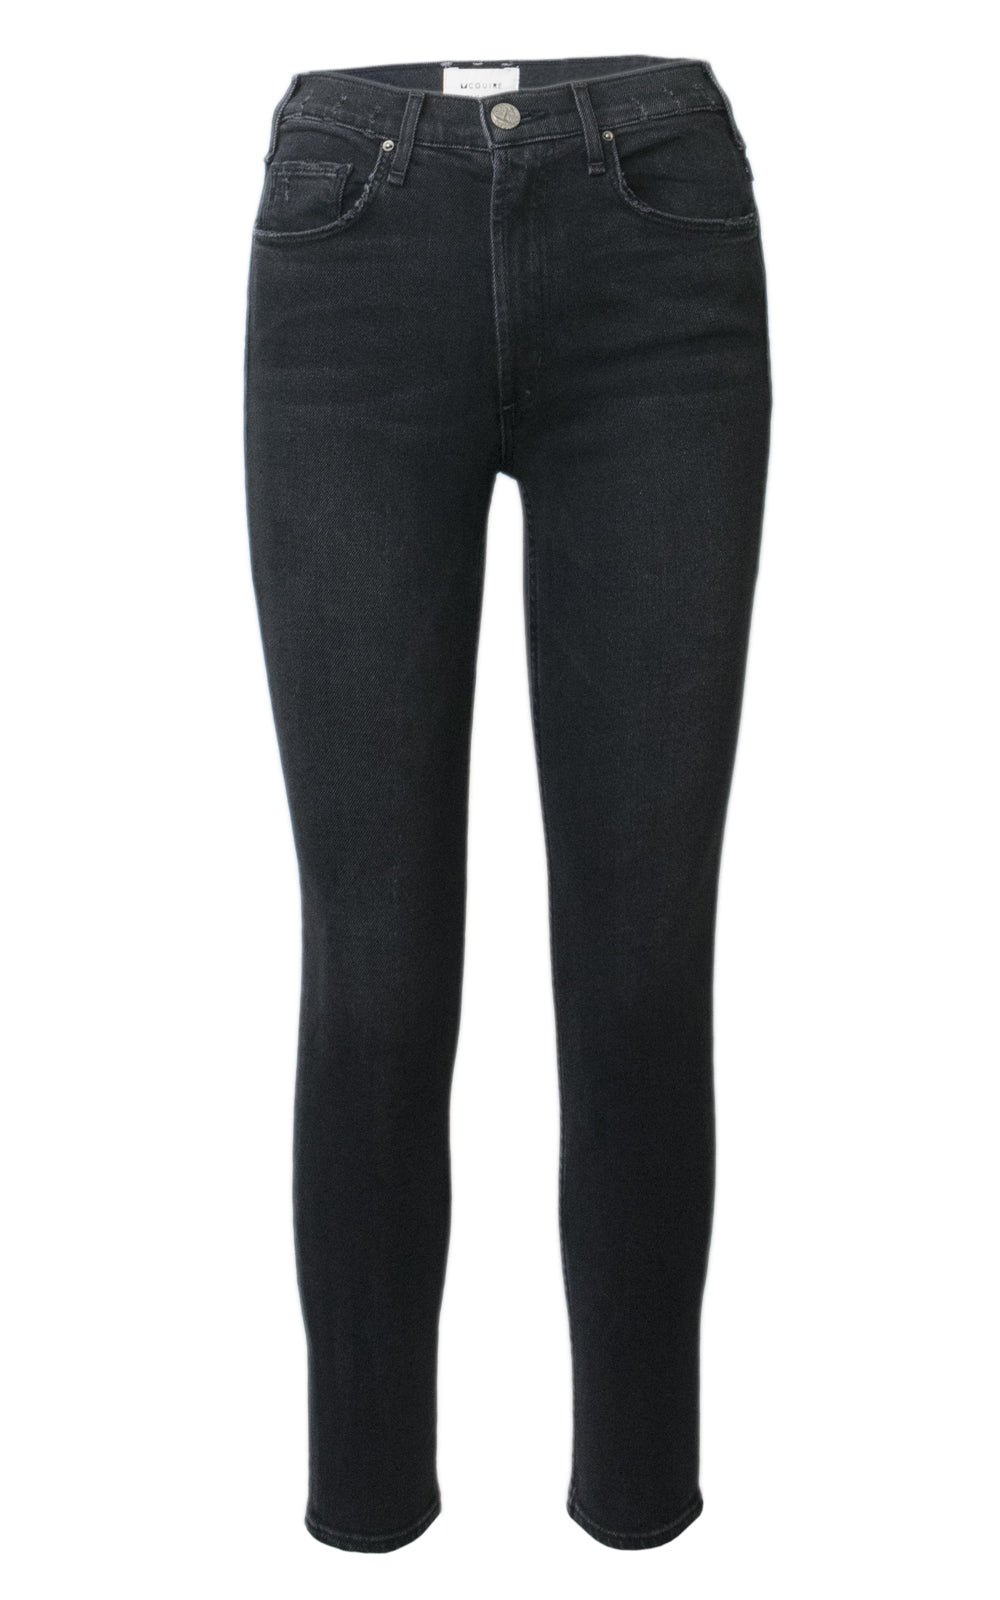 McGuire Black High-Rise Newton Skinny Jeans Knight Rider